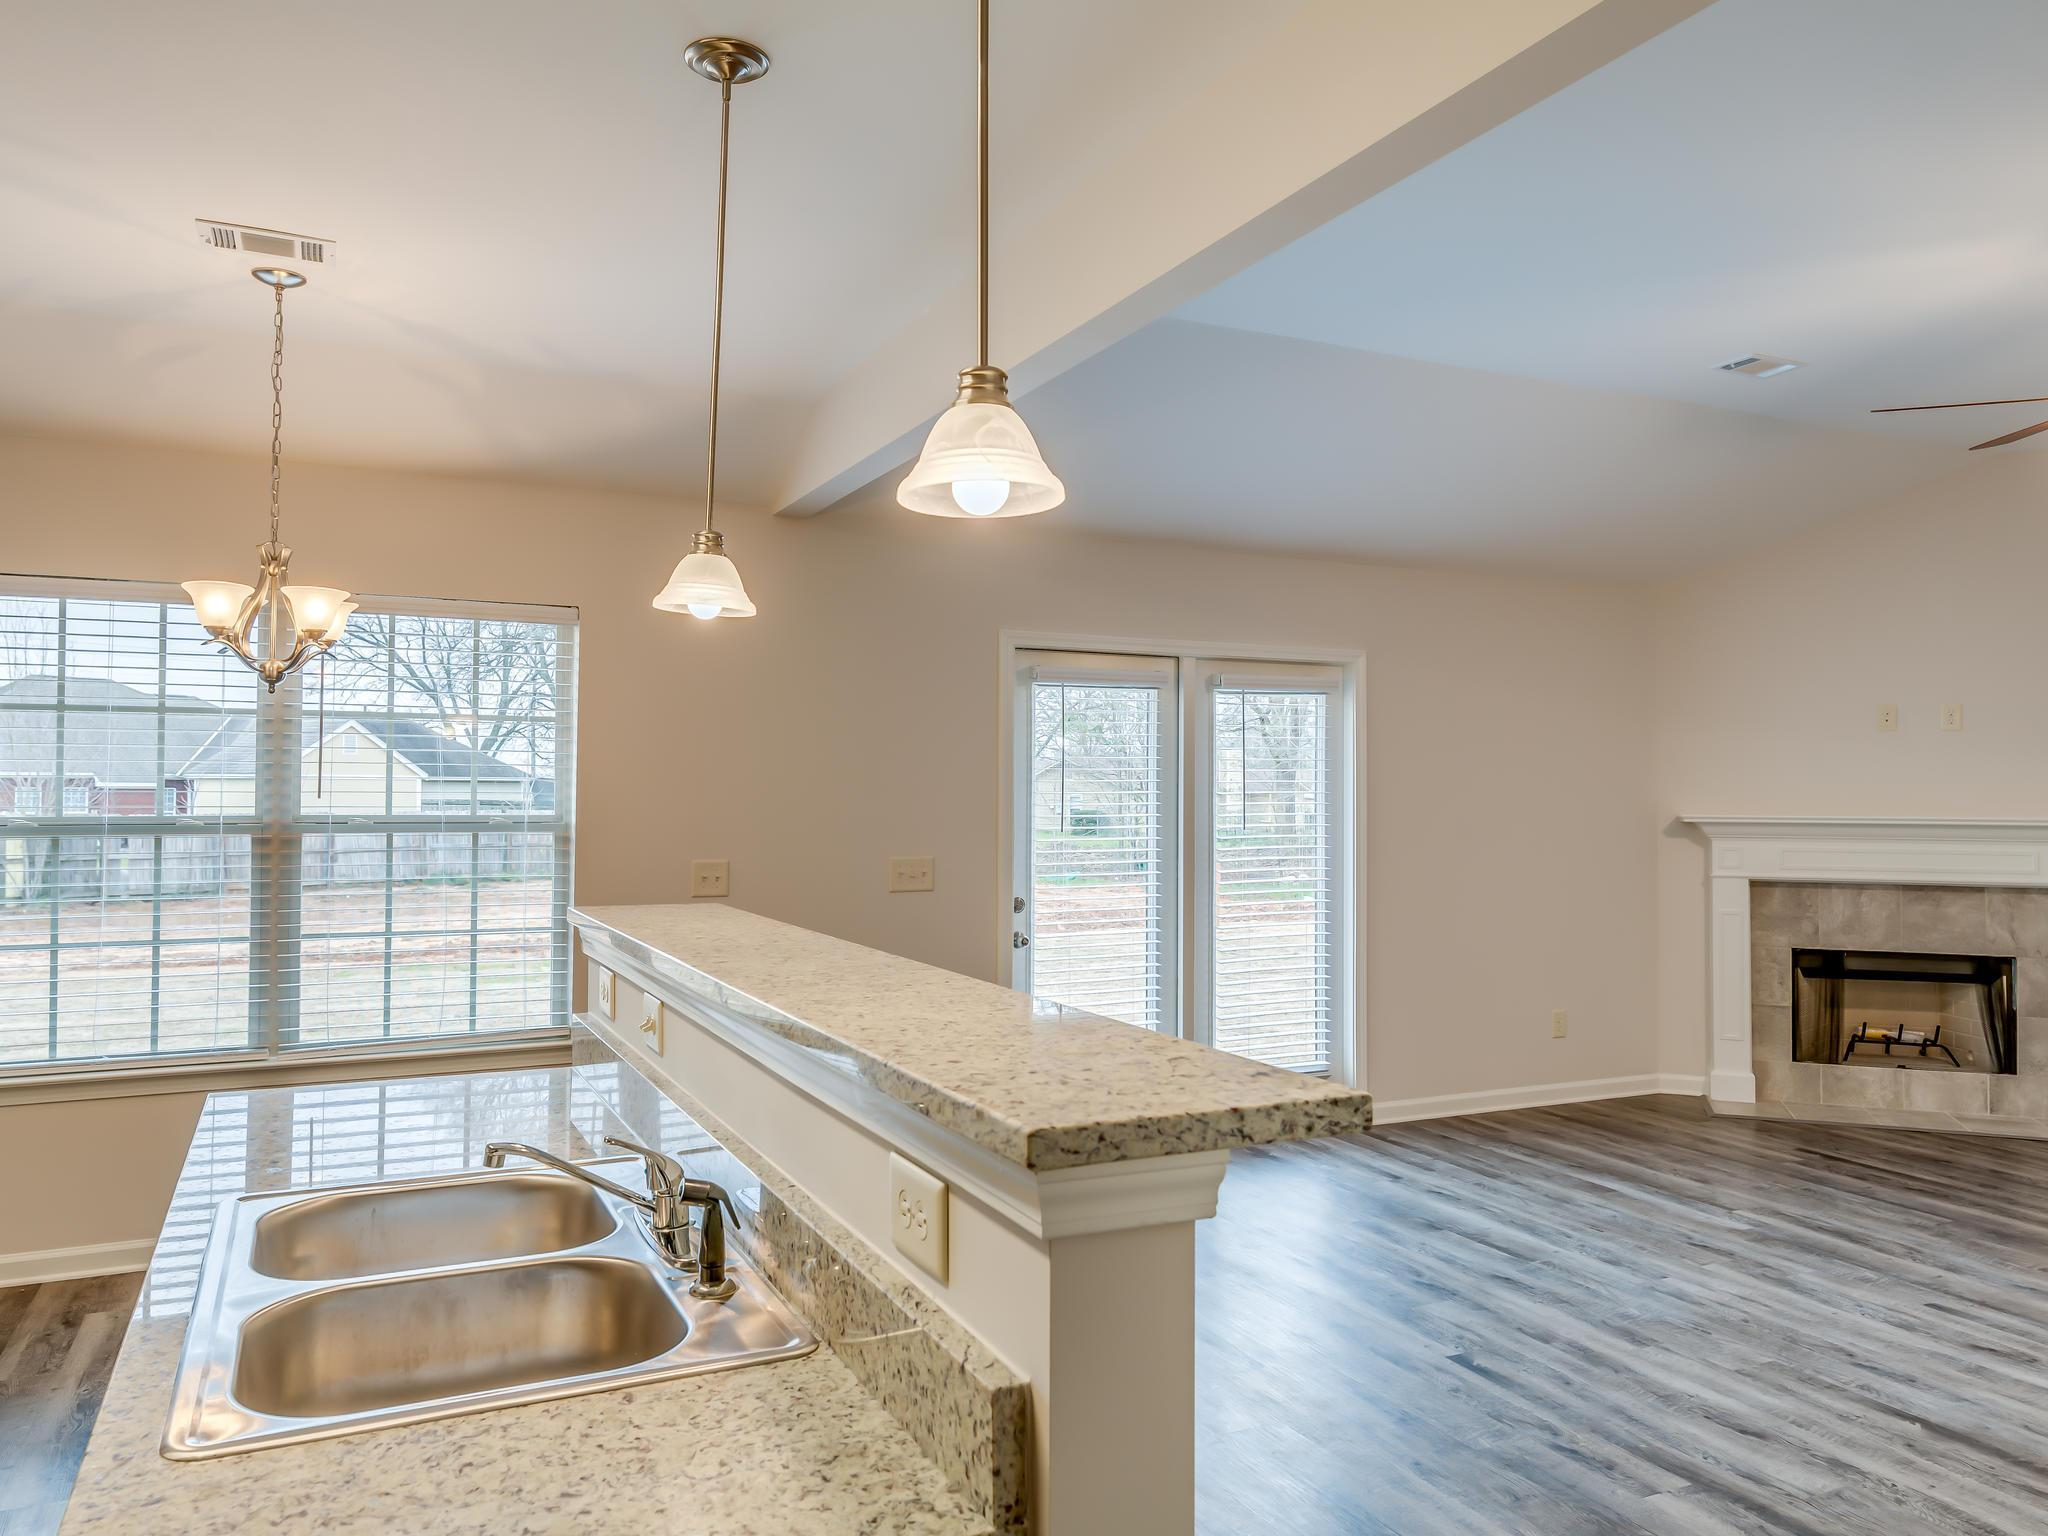 Kitchen featured in the Palmetto By Goodwyn Building in Montgomery, AL